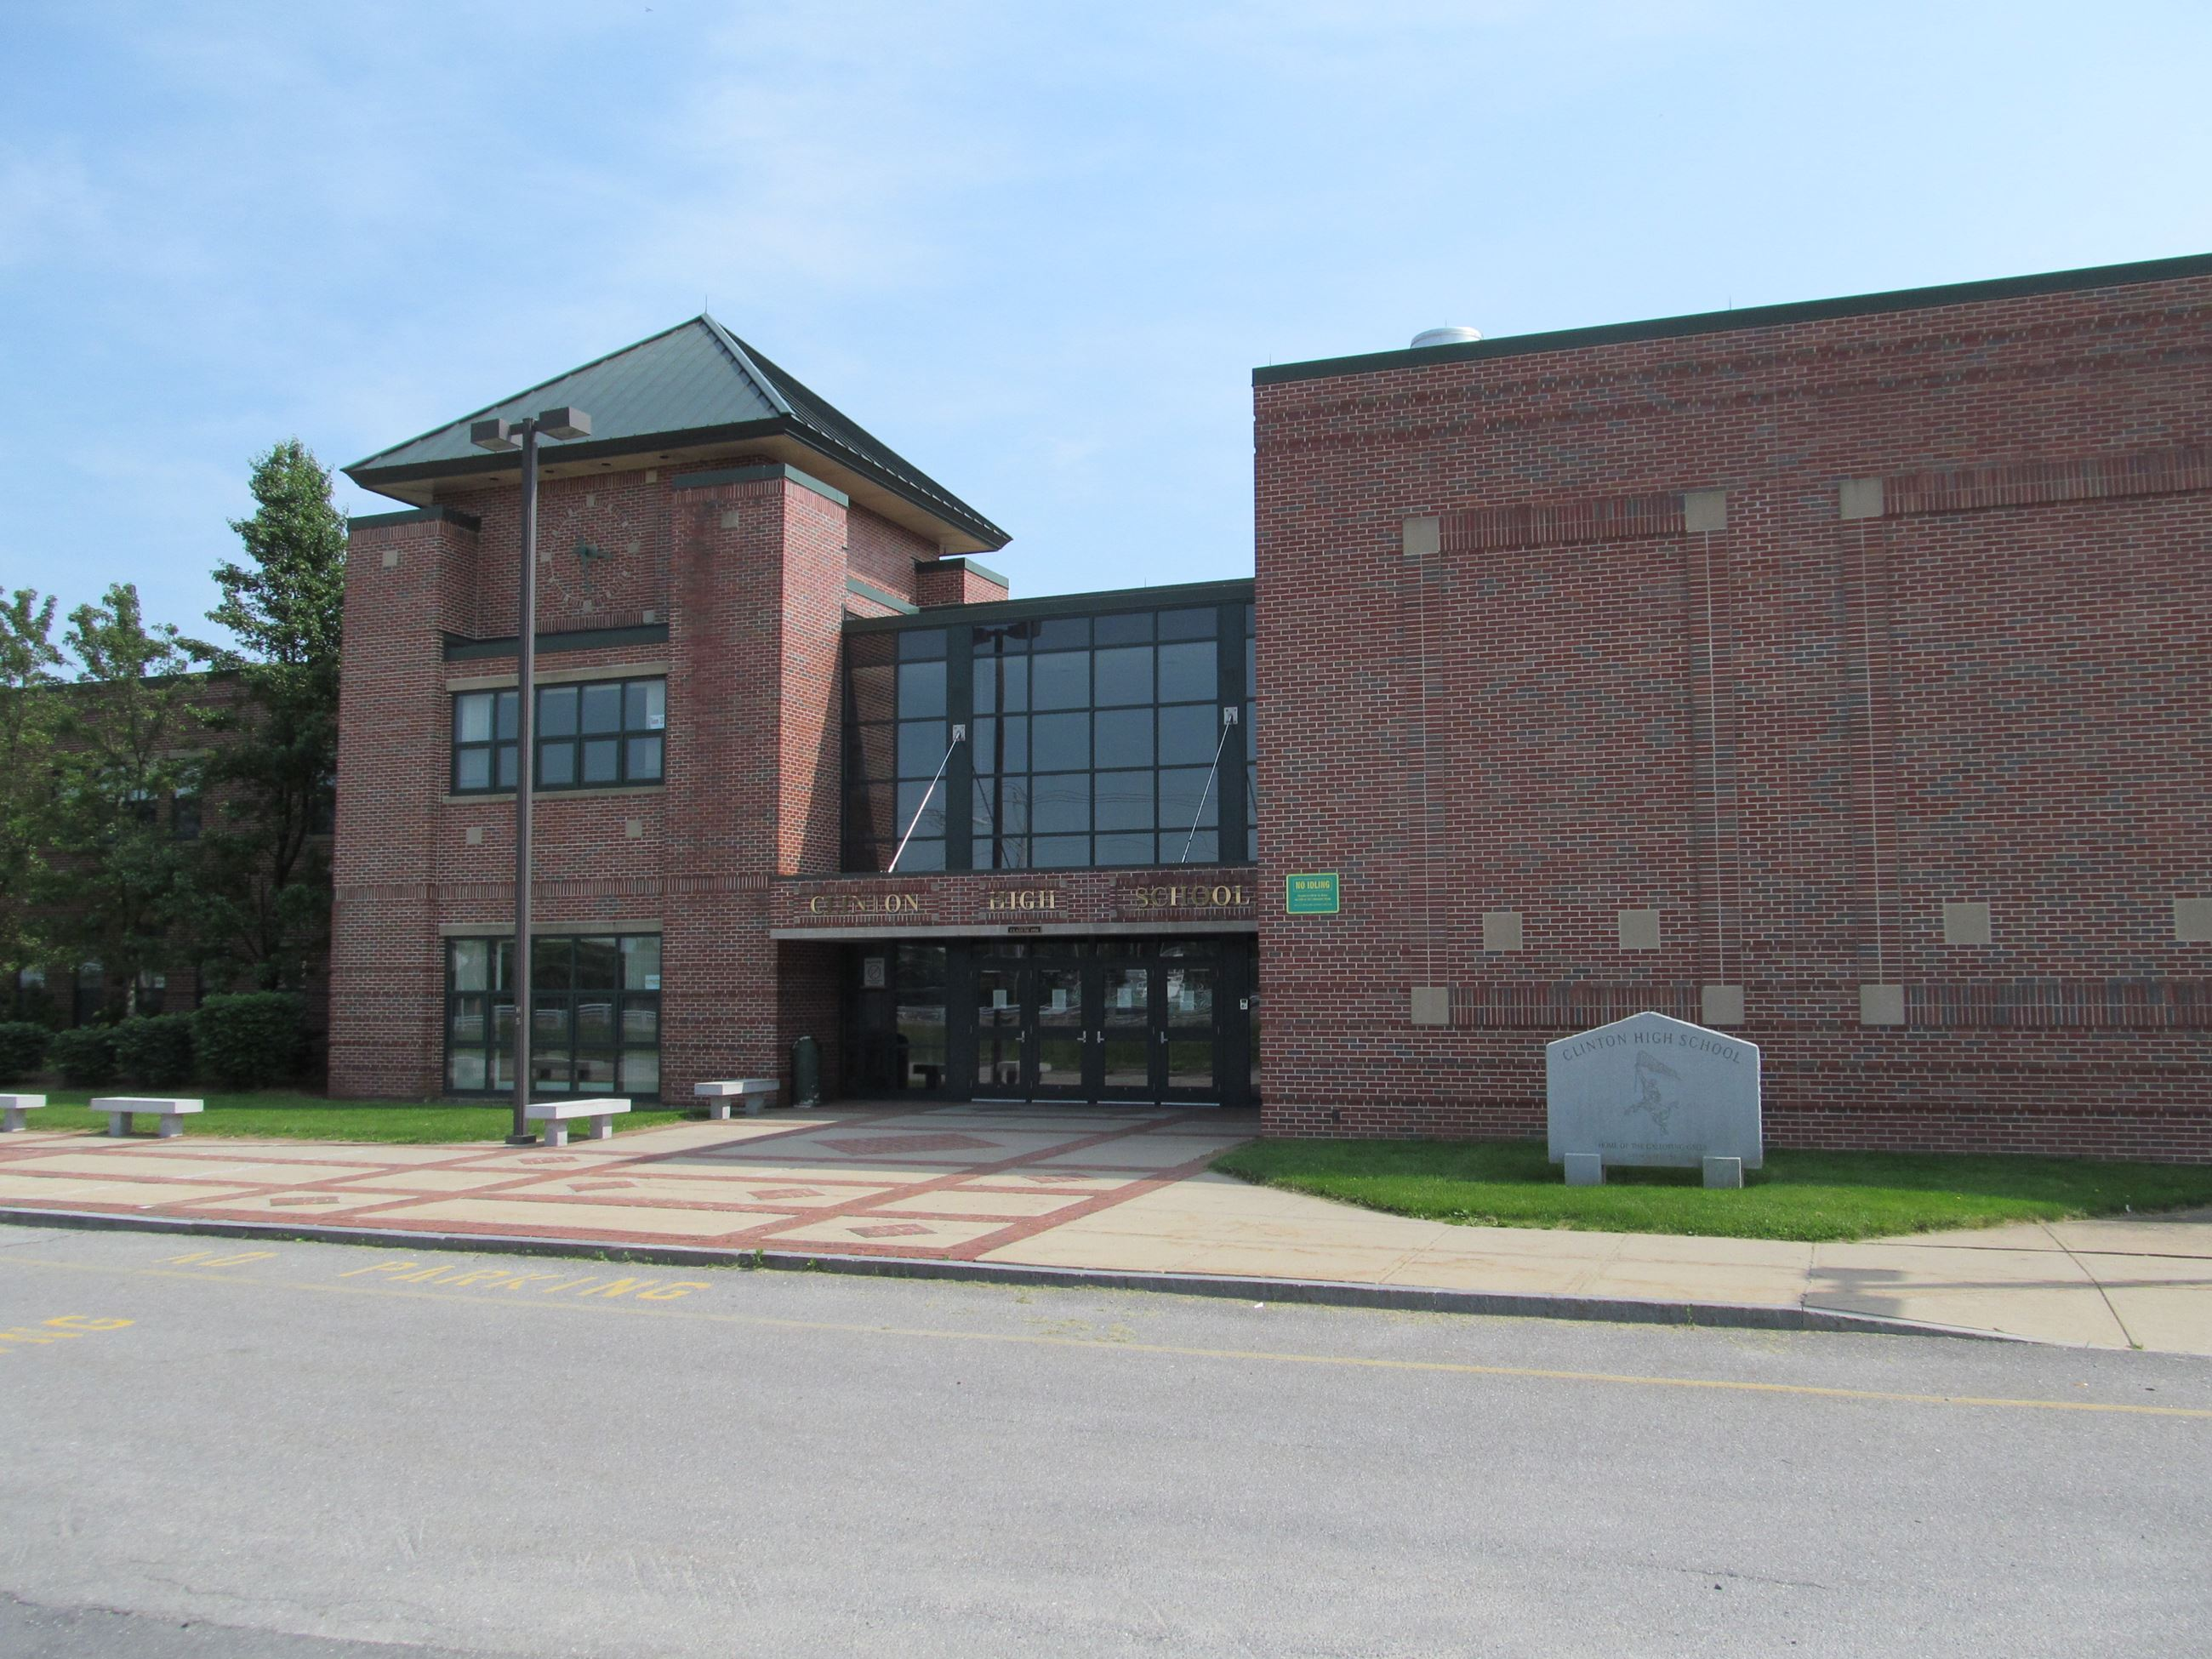 Outside view of clinton high school